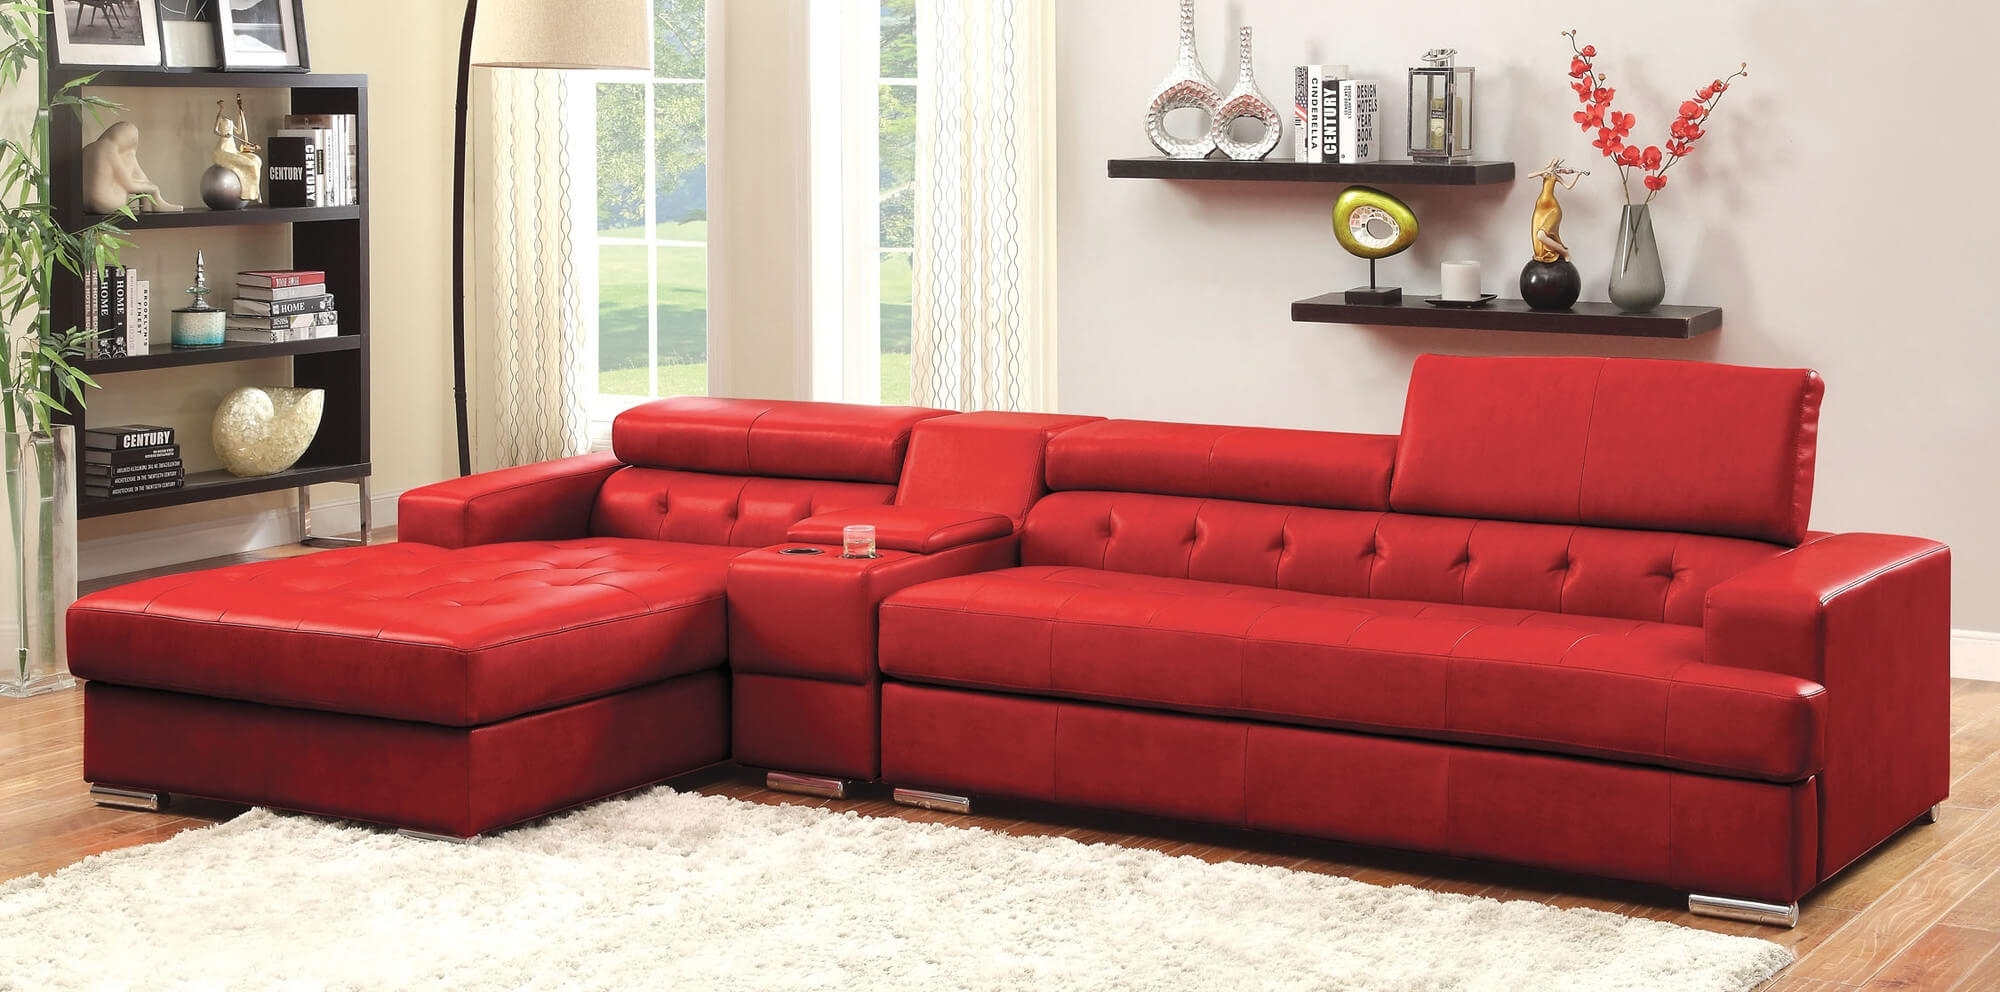 Stylish Modern Red Sectional Sofas In Red Leather Sectionals With Chaise (View 10 of 10)